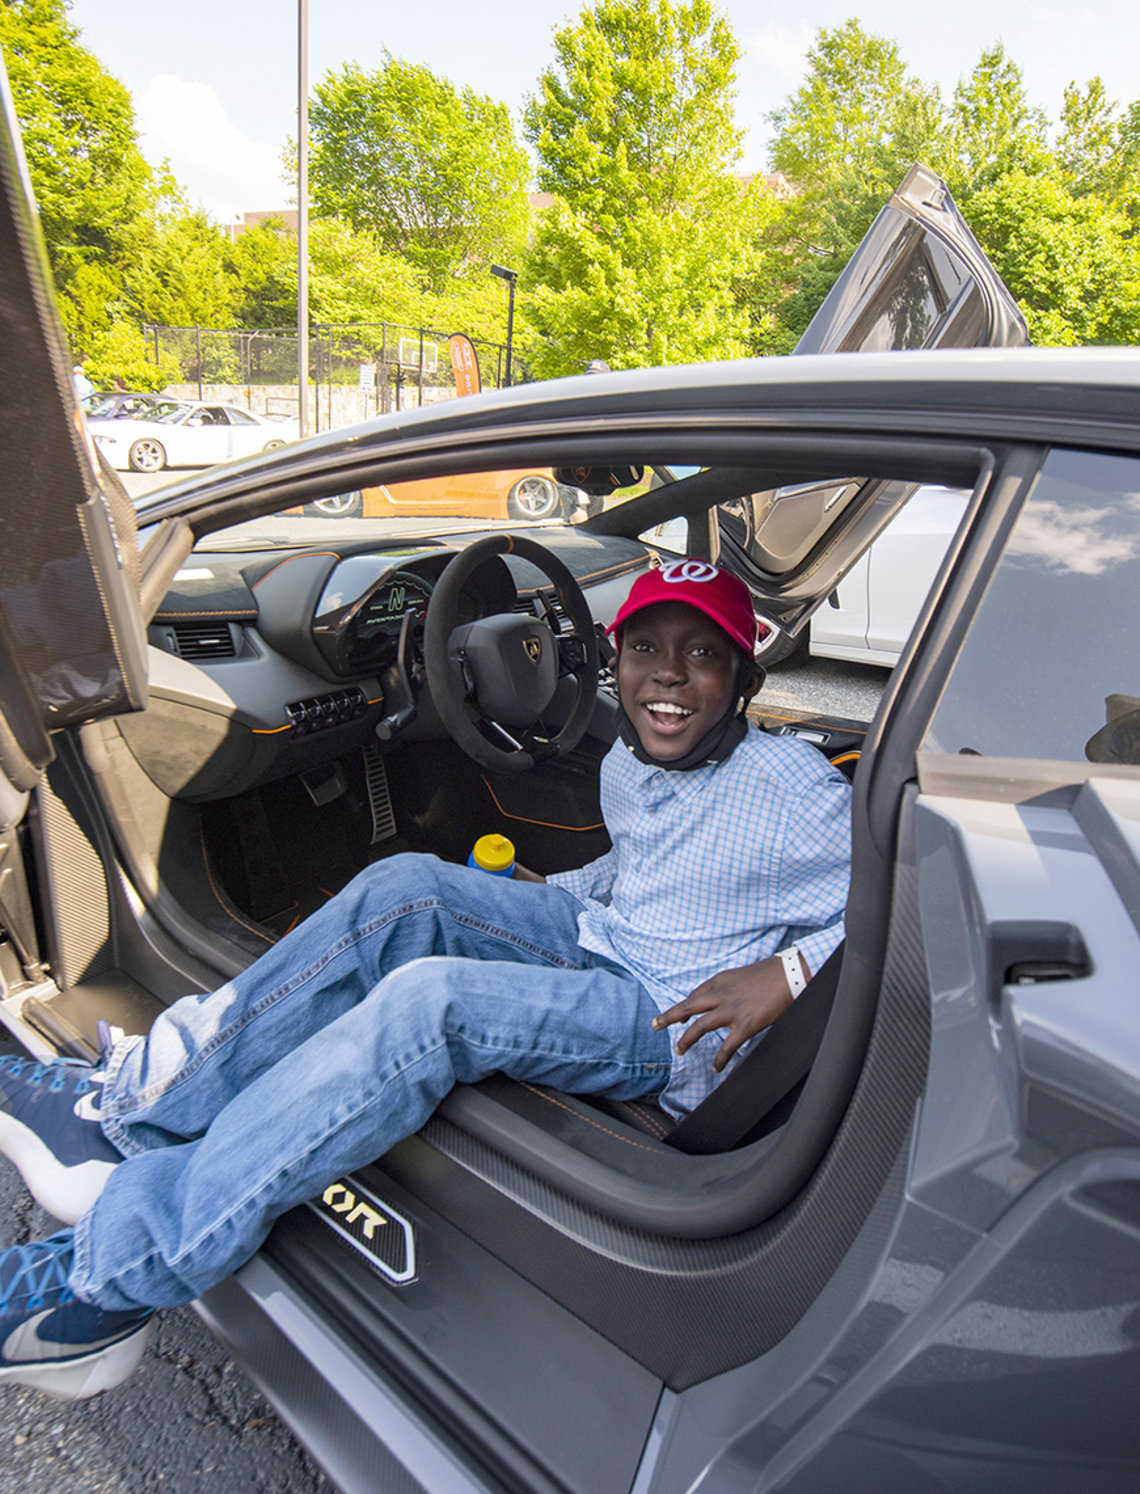 Smiling youngster sits in the driver's seat of a luxury sportscar.